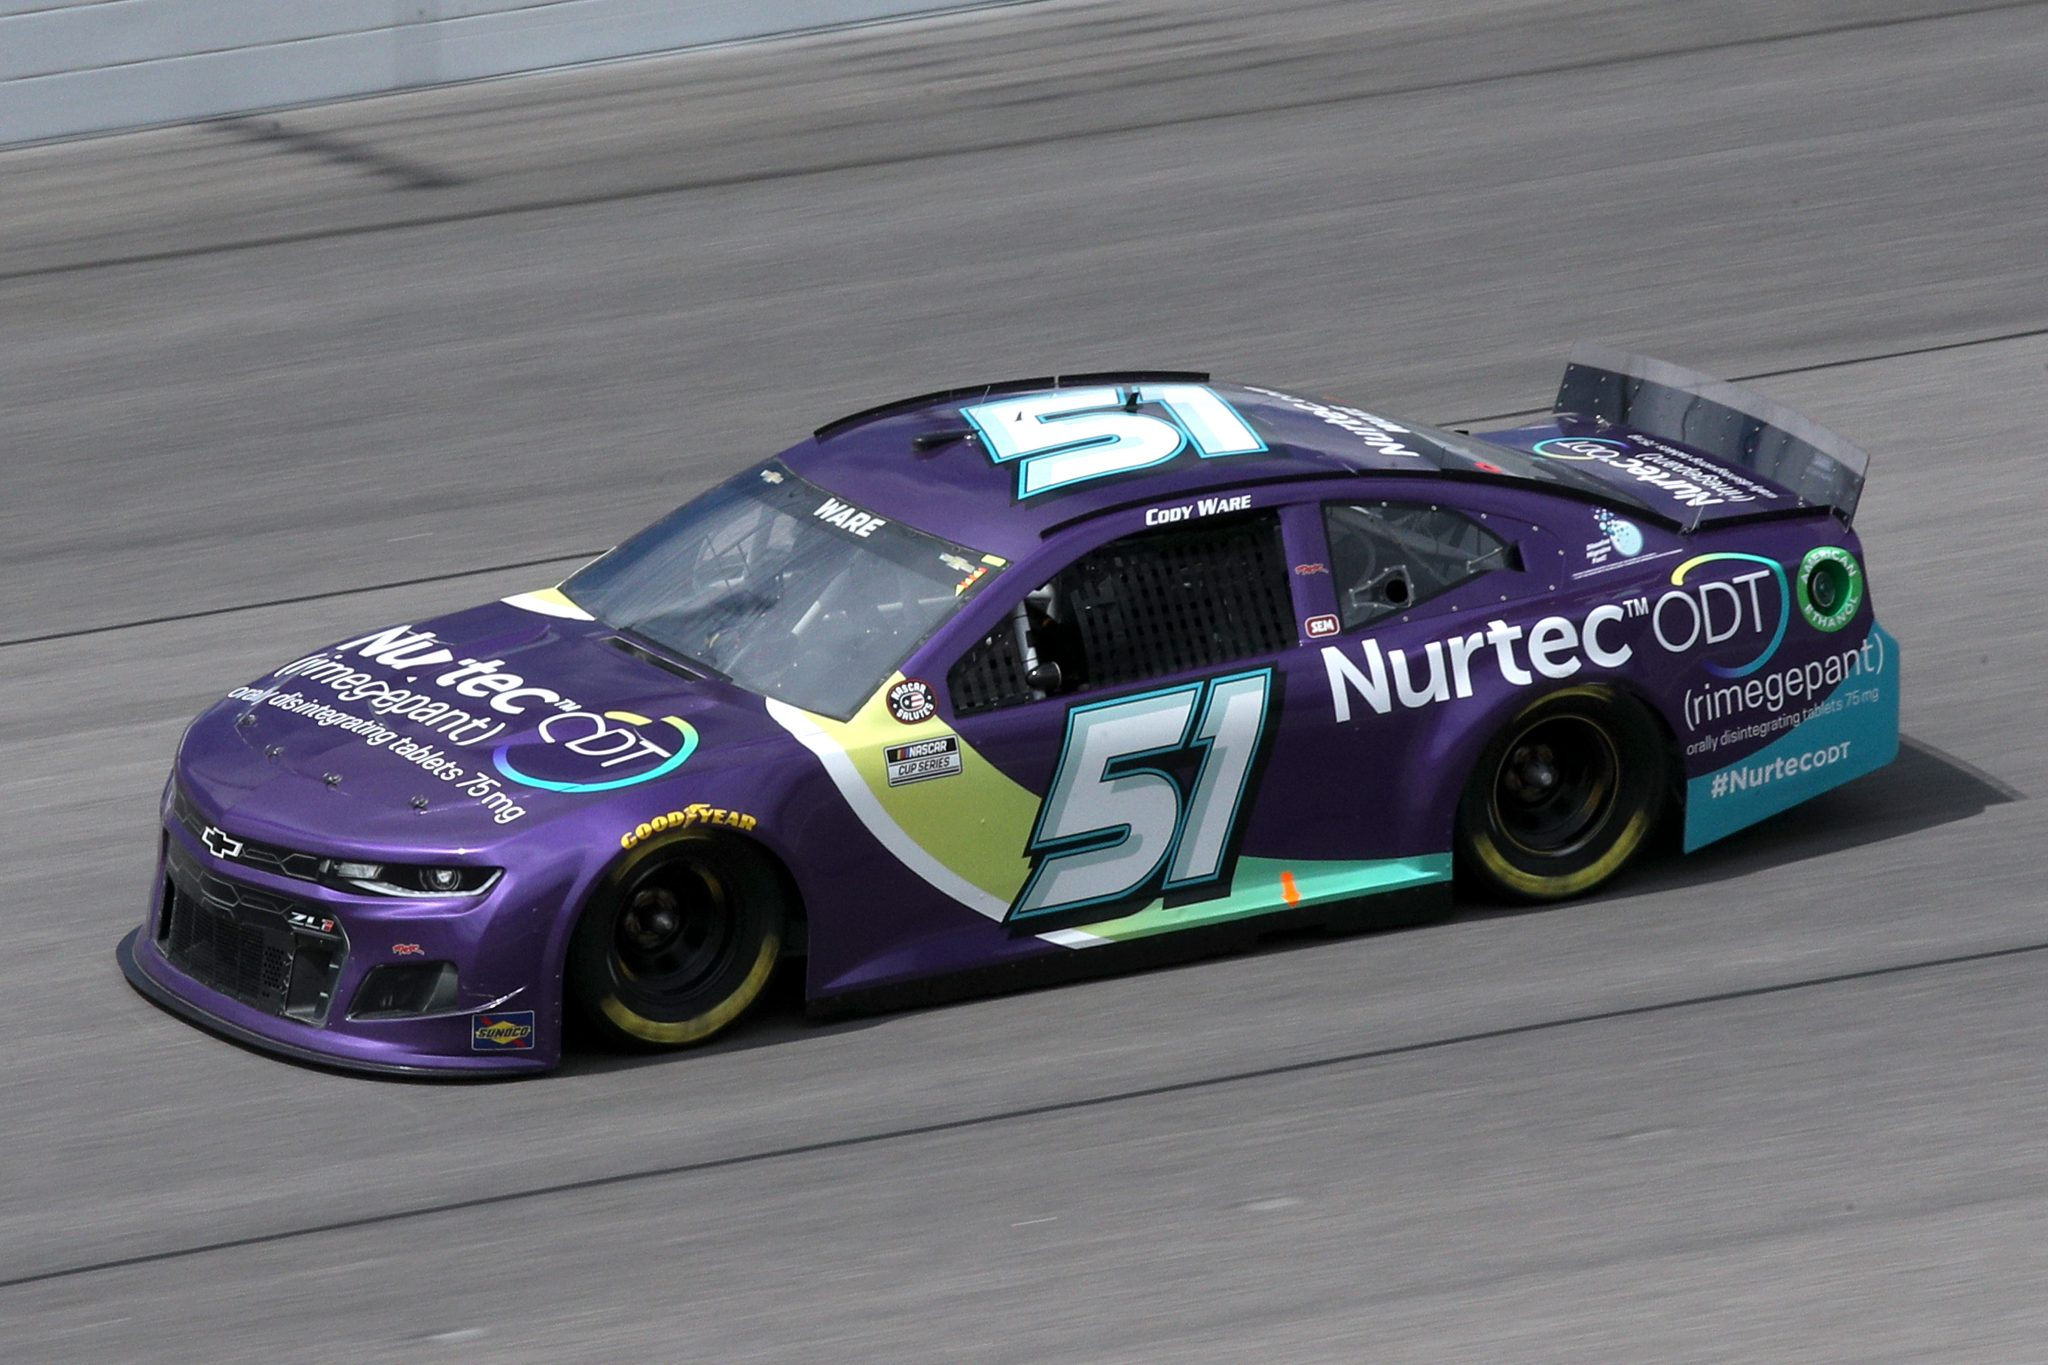 KANSAS CITY, KANSAS - MAY 02: Cody Ware, driver of the #51 Nurtec ODT Chevrolet, drives during the NASCAR Cup Series Buschy McBusch Race 400 at Kansas Speedway on May 02, 2021 in Kansas City, Kansas. (Photo by Sean Gardner/Getty Images) | Getty Images